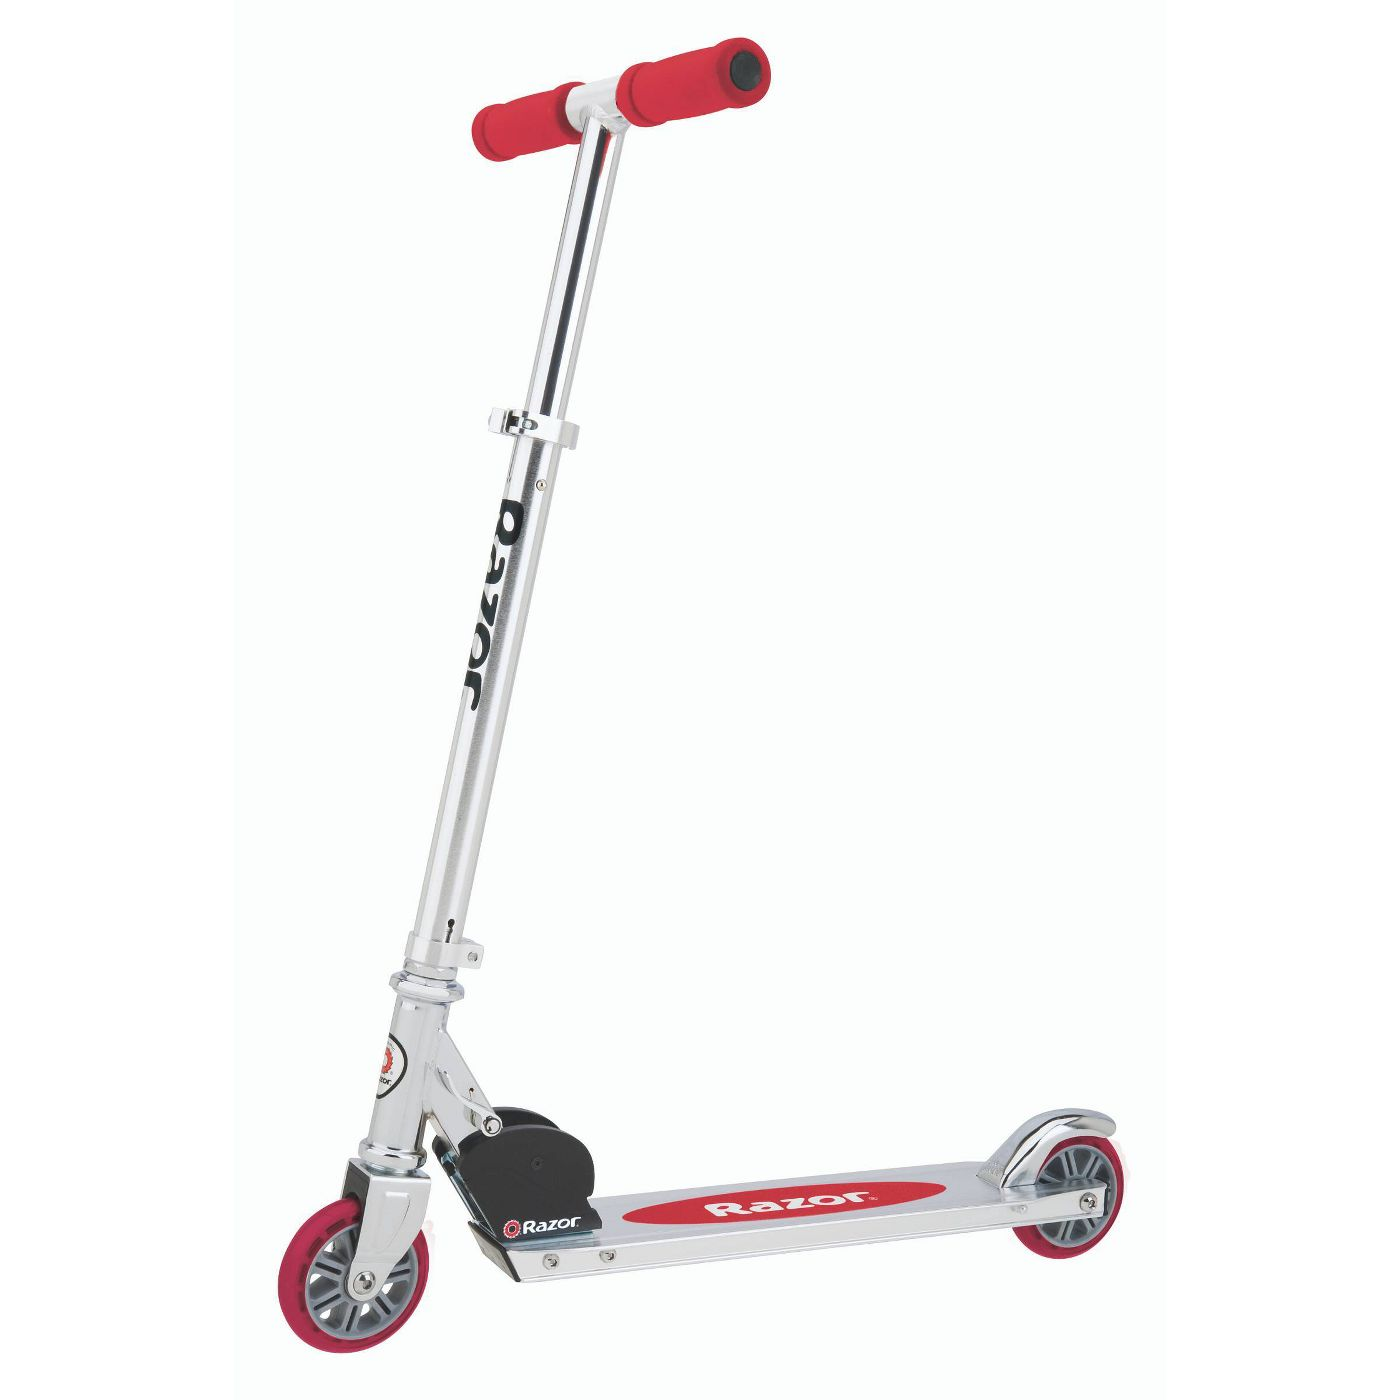 Razor A Scooter - image 1 of 7